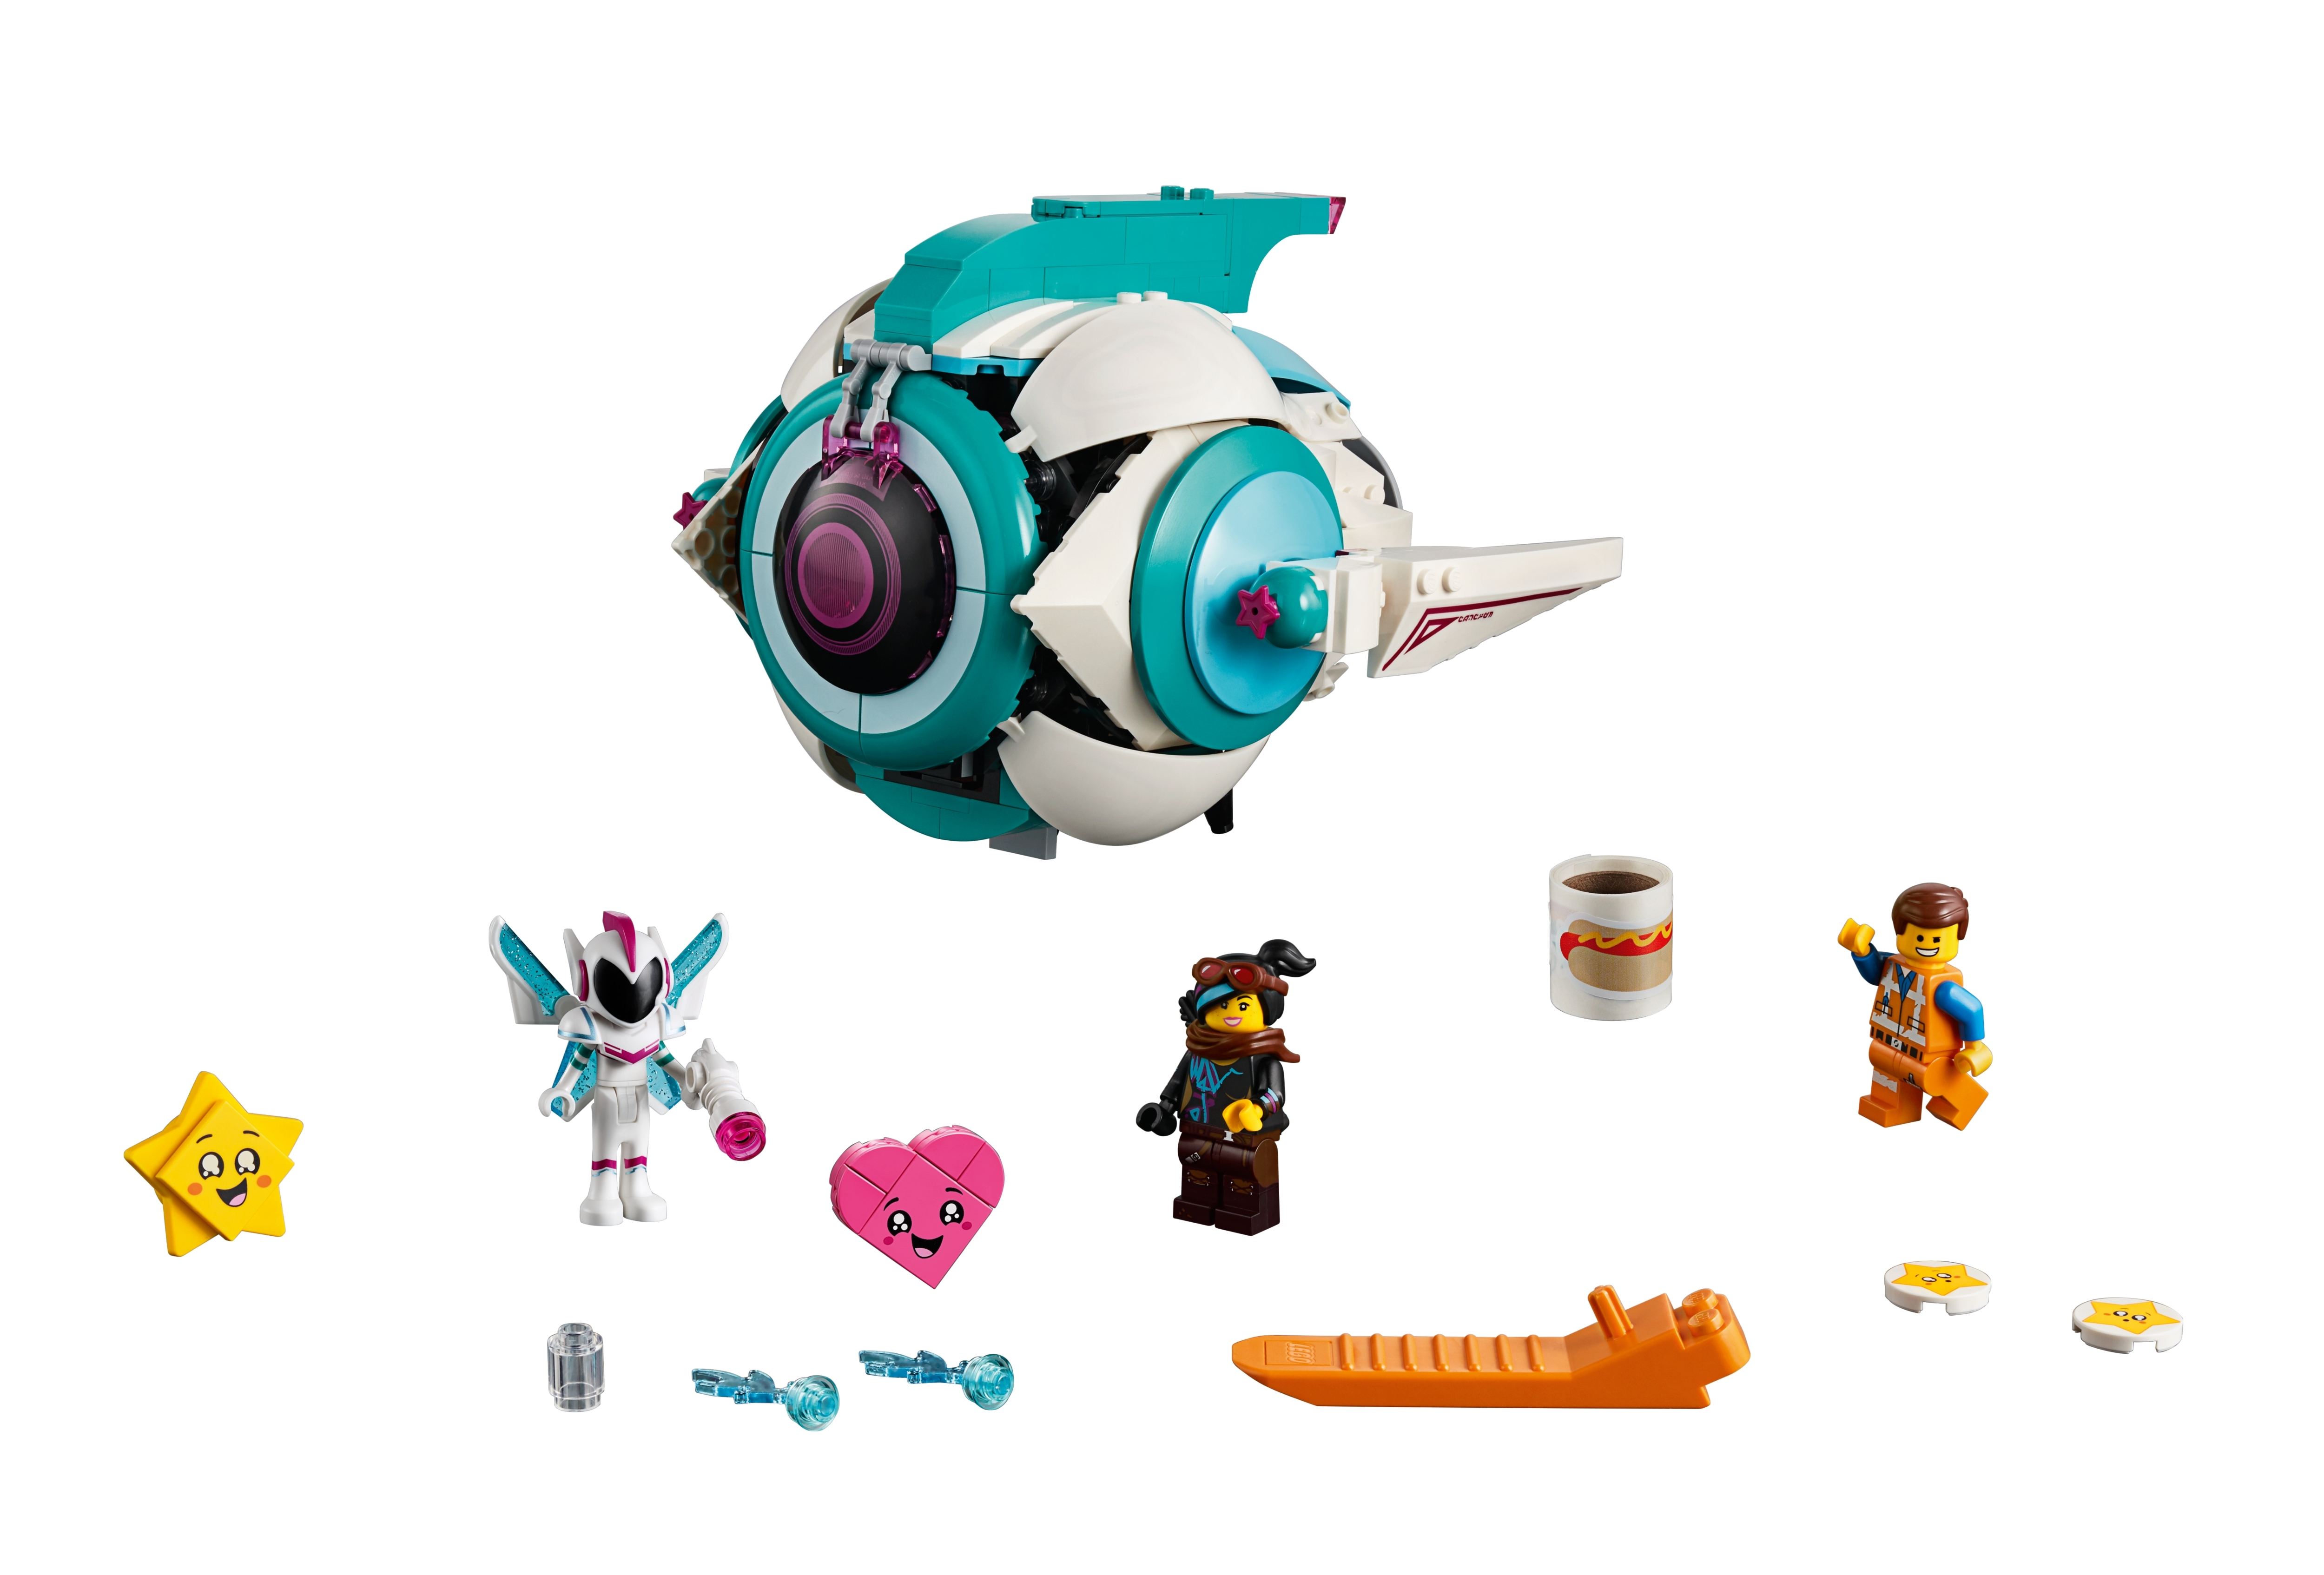 Sweet Mayhem S Systar Starship 70830 The Lego Movie 2 Buy Online At The Official Lego Shop Us